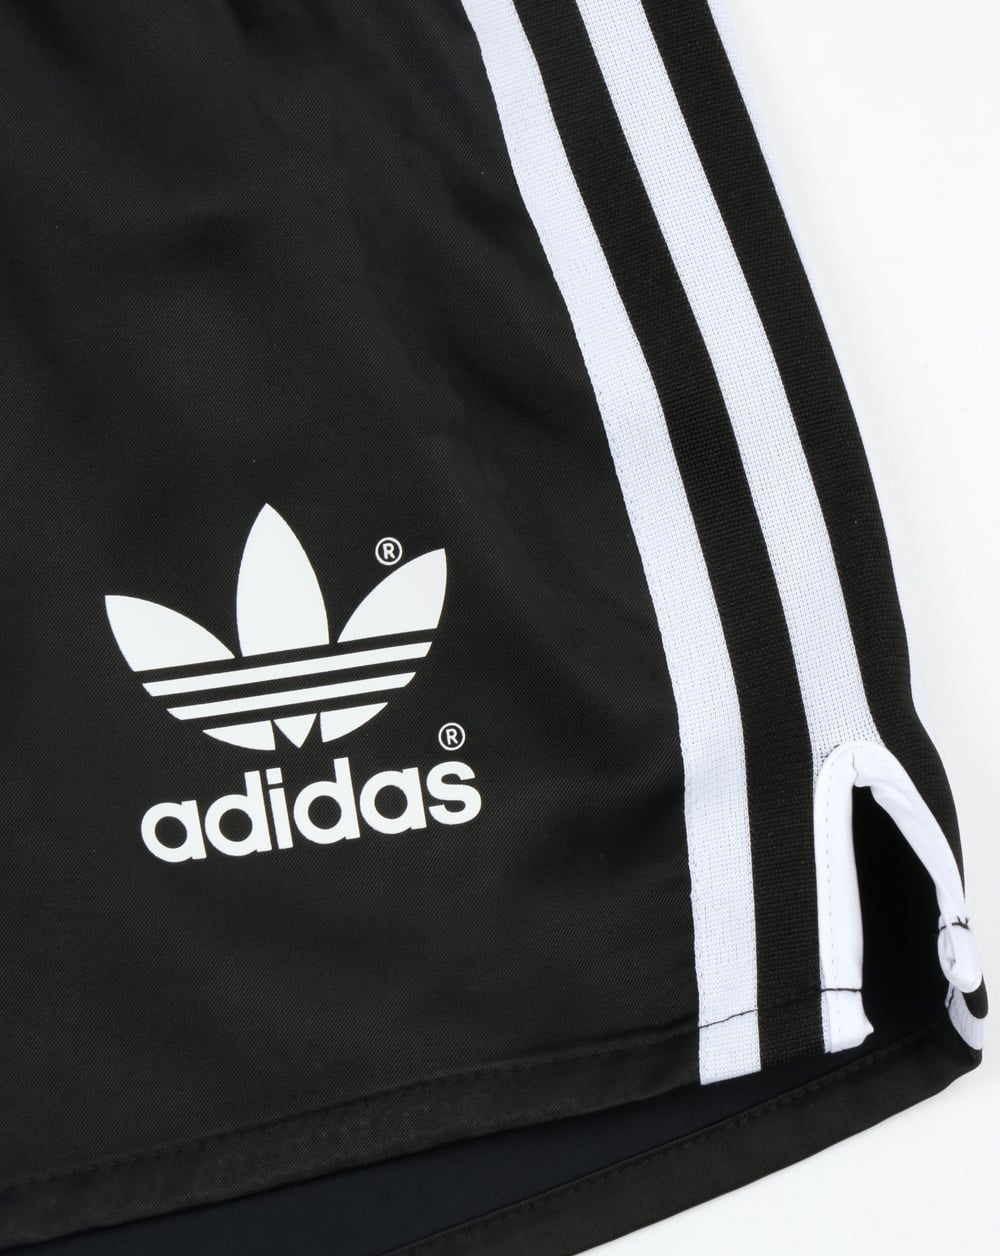 Black Adidas Originals Shorts Shorts Retro Adidas Originals Retro Black Adidas hCtxrsBQd